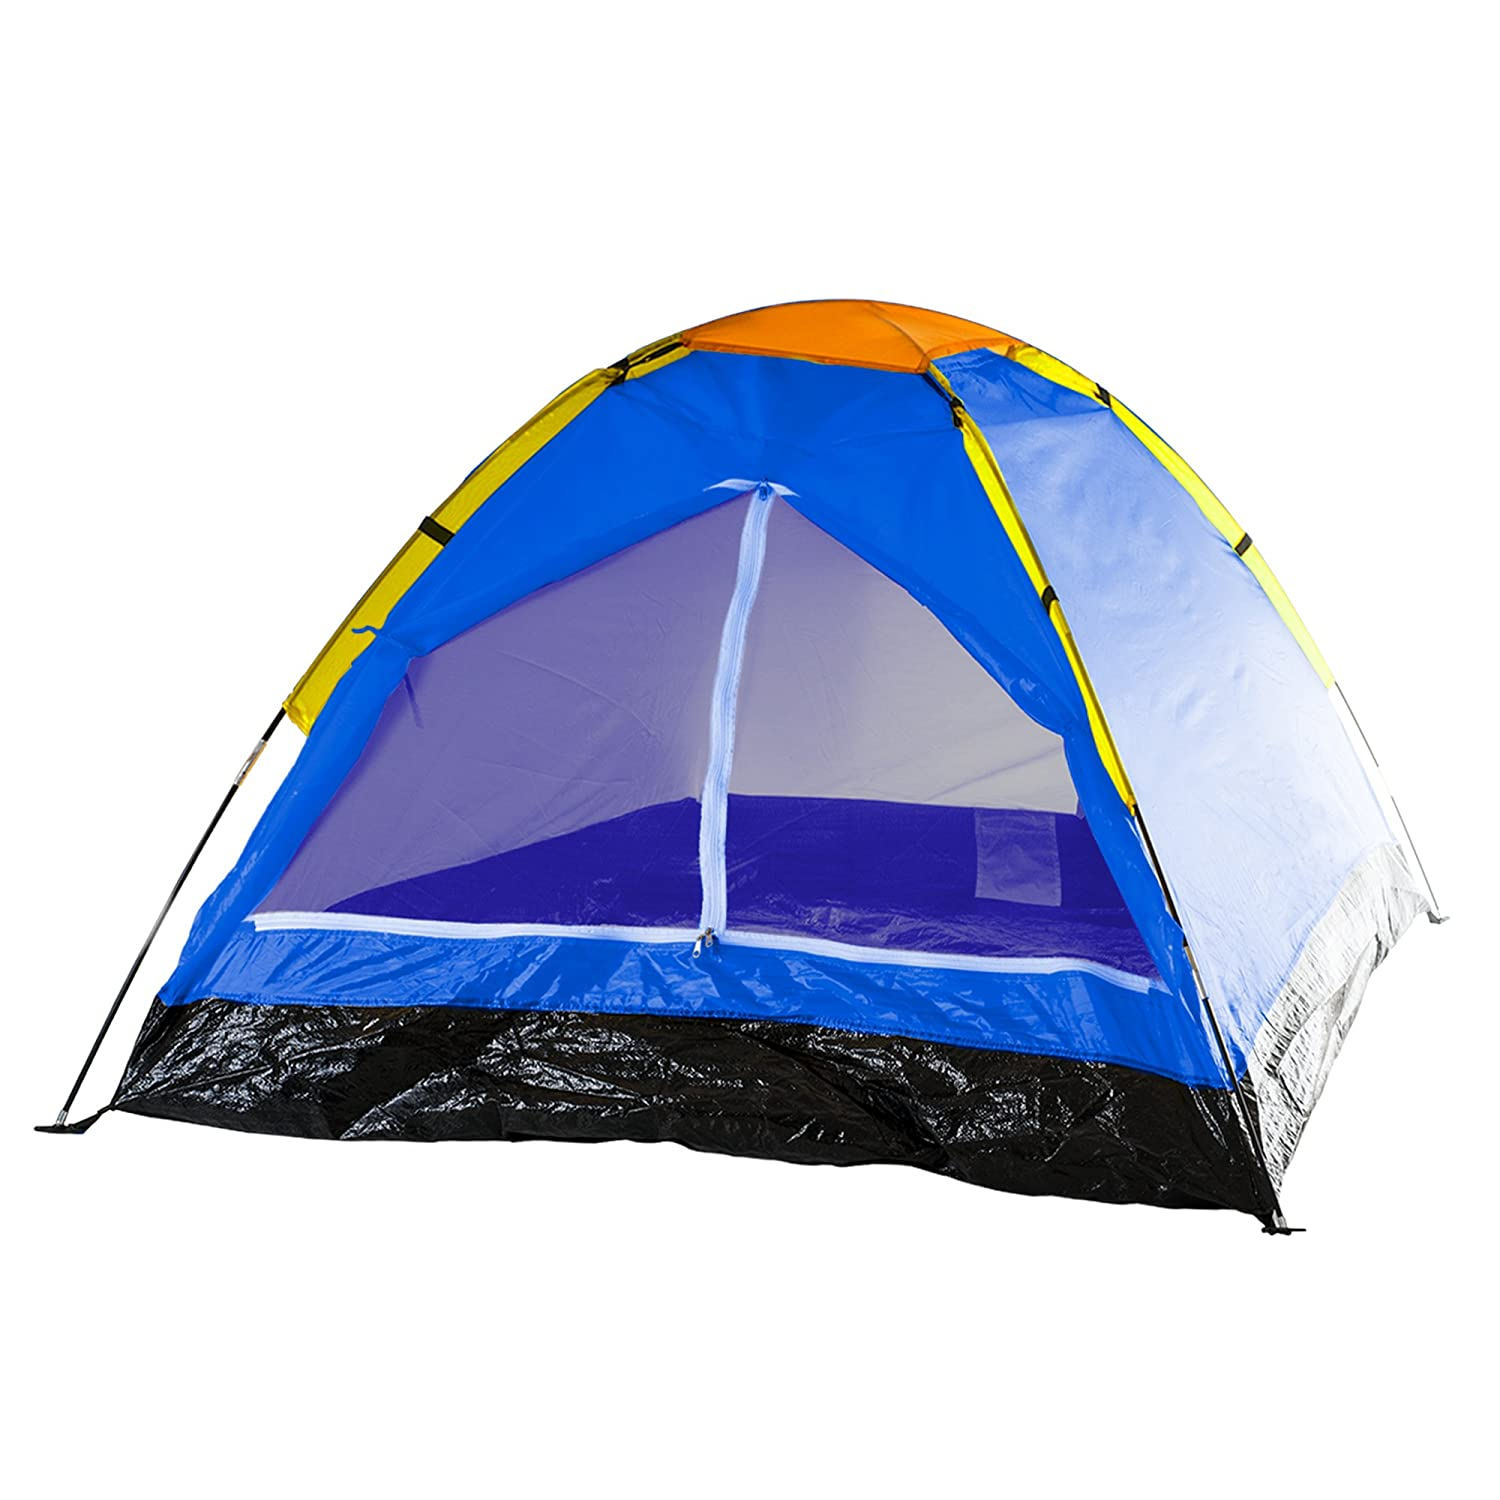 2-Person Tent, Dome Tents for Camping, Best Dome Tent